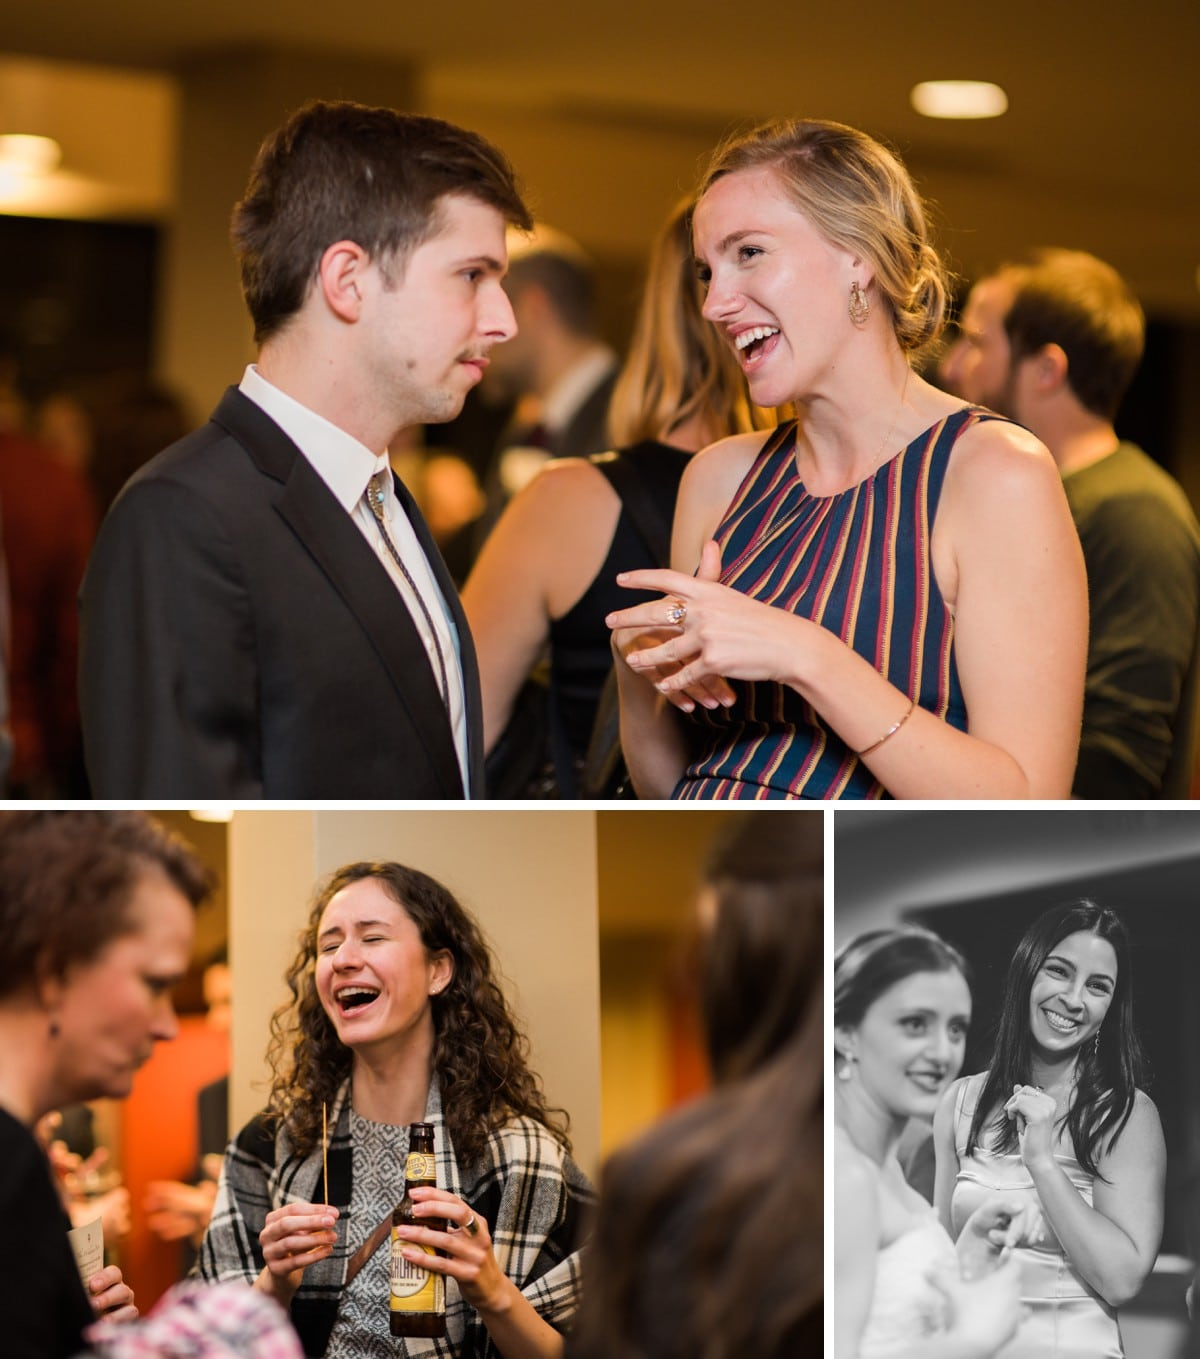 Wedding Reception at the Sheldon Concert Hall and Art Galleries, St. Louis Wedding Photographer